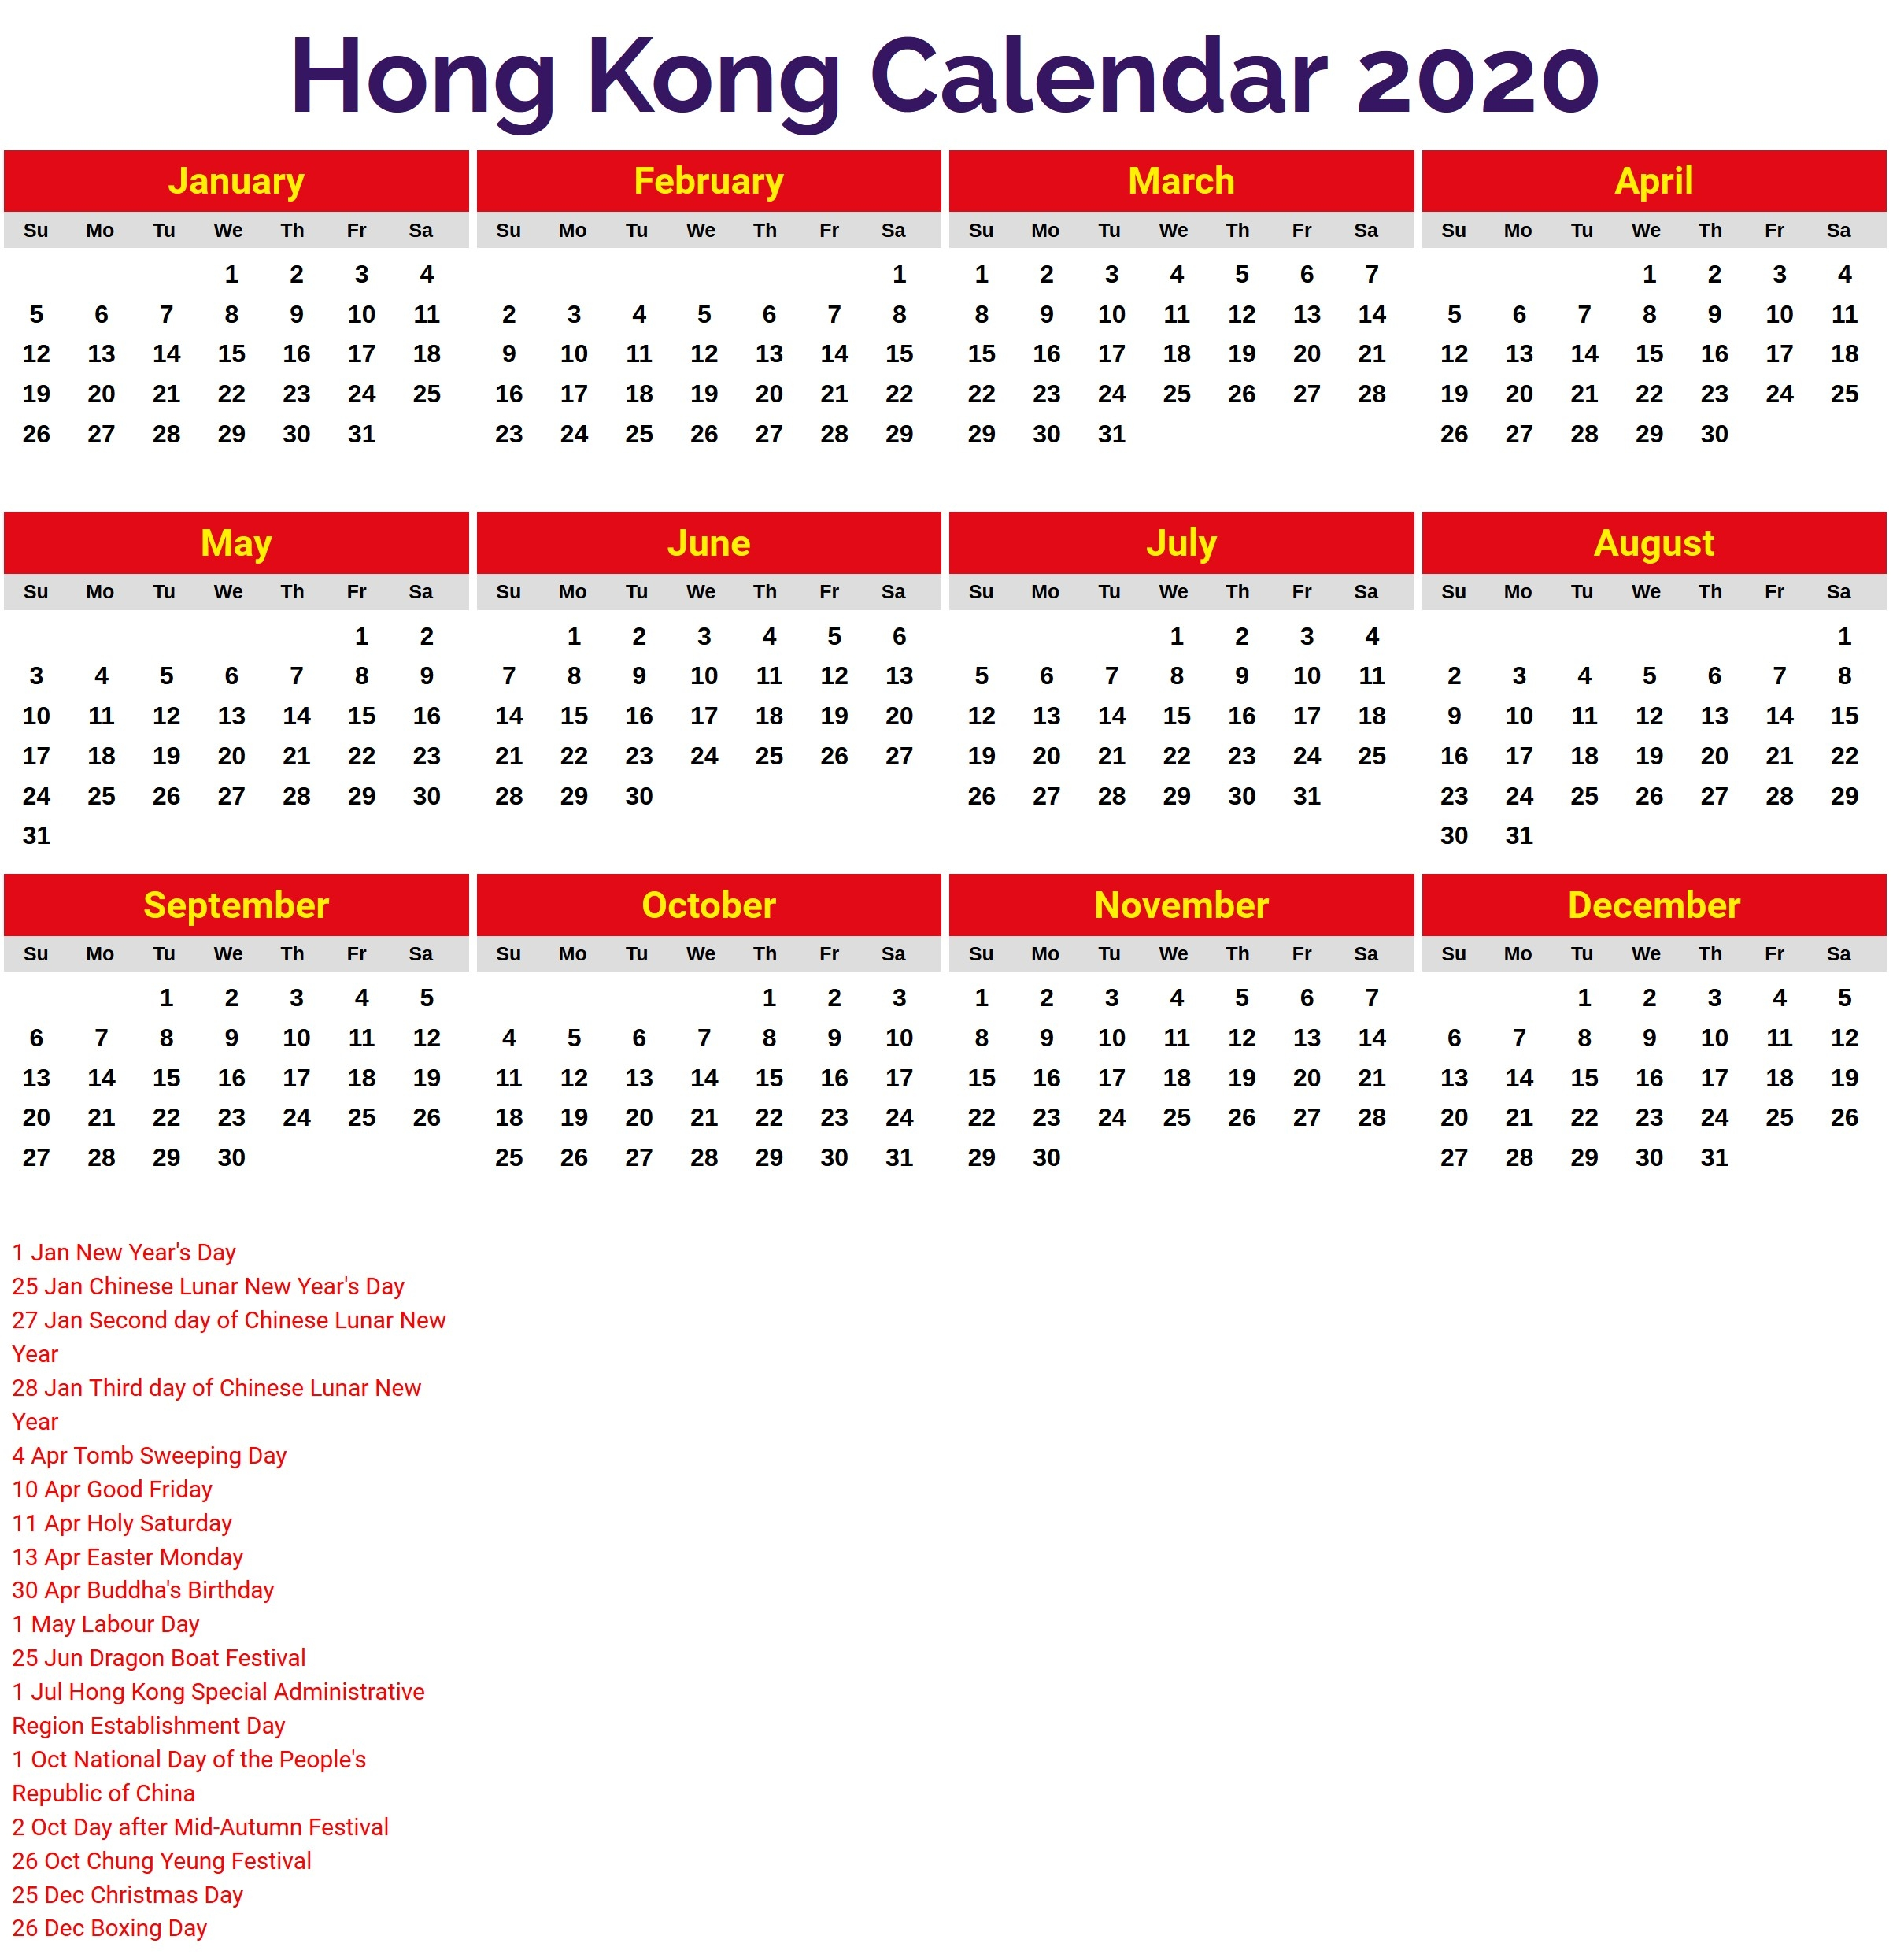 2020 Calendar Hong Kong – Printable Year Calendar-January 2020 Calendar Hong Kong